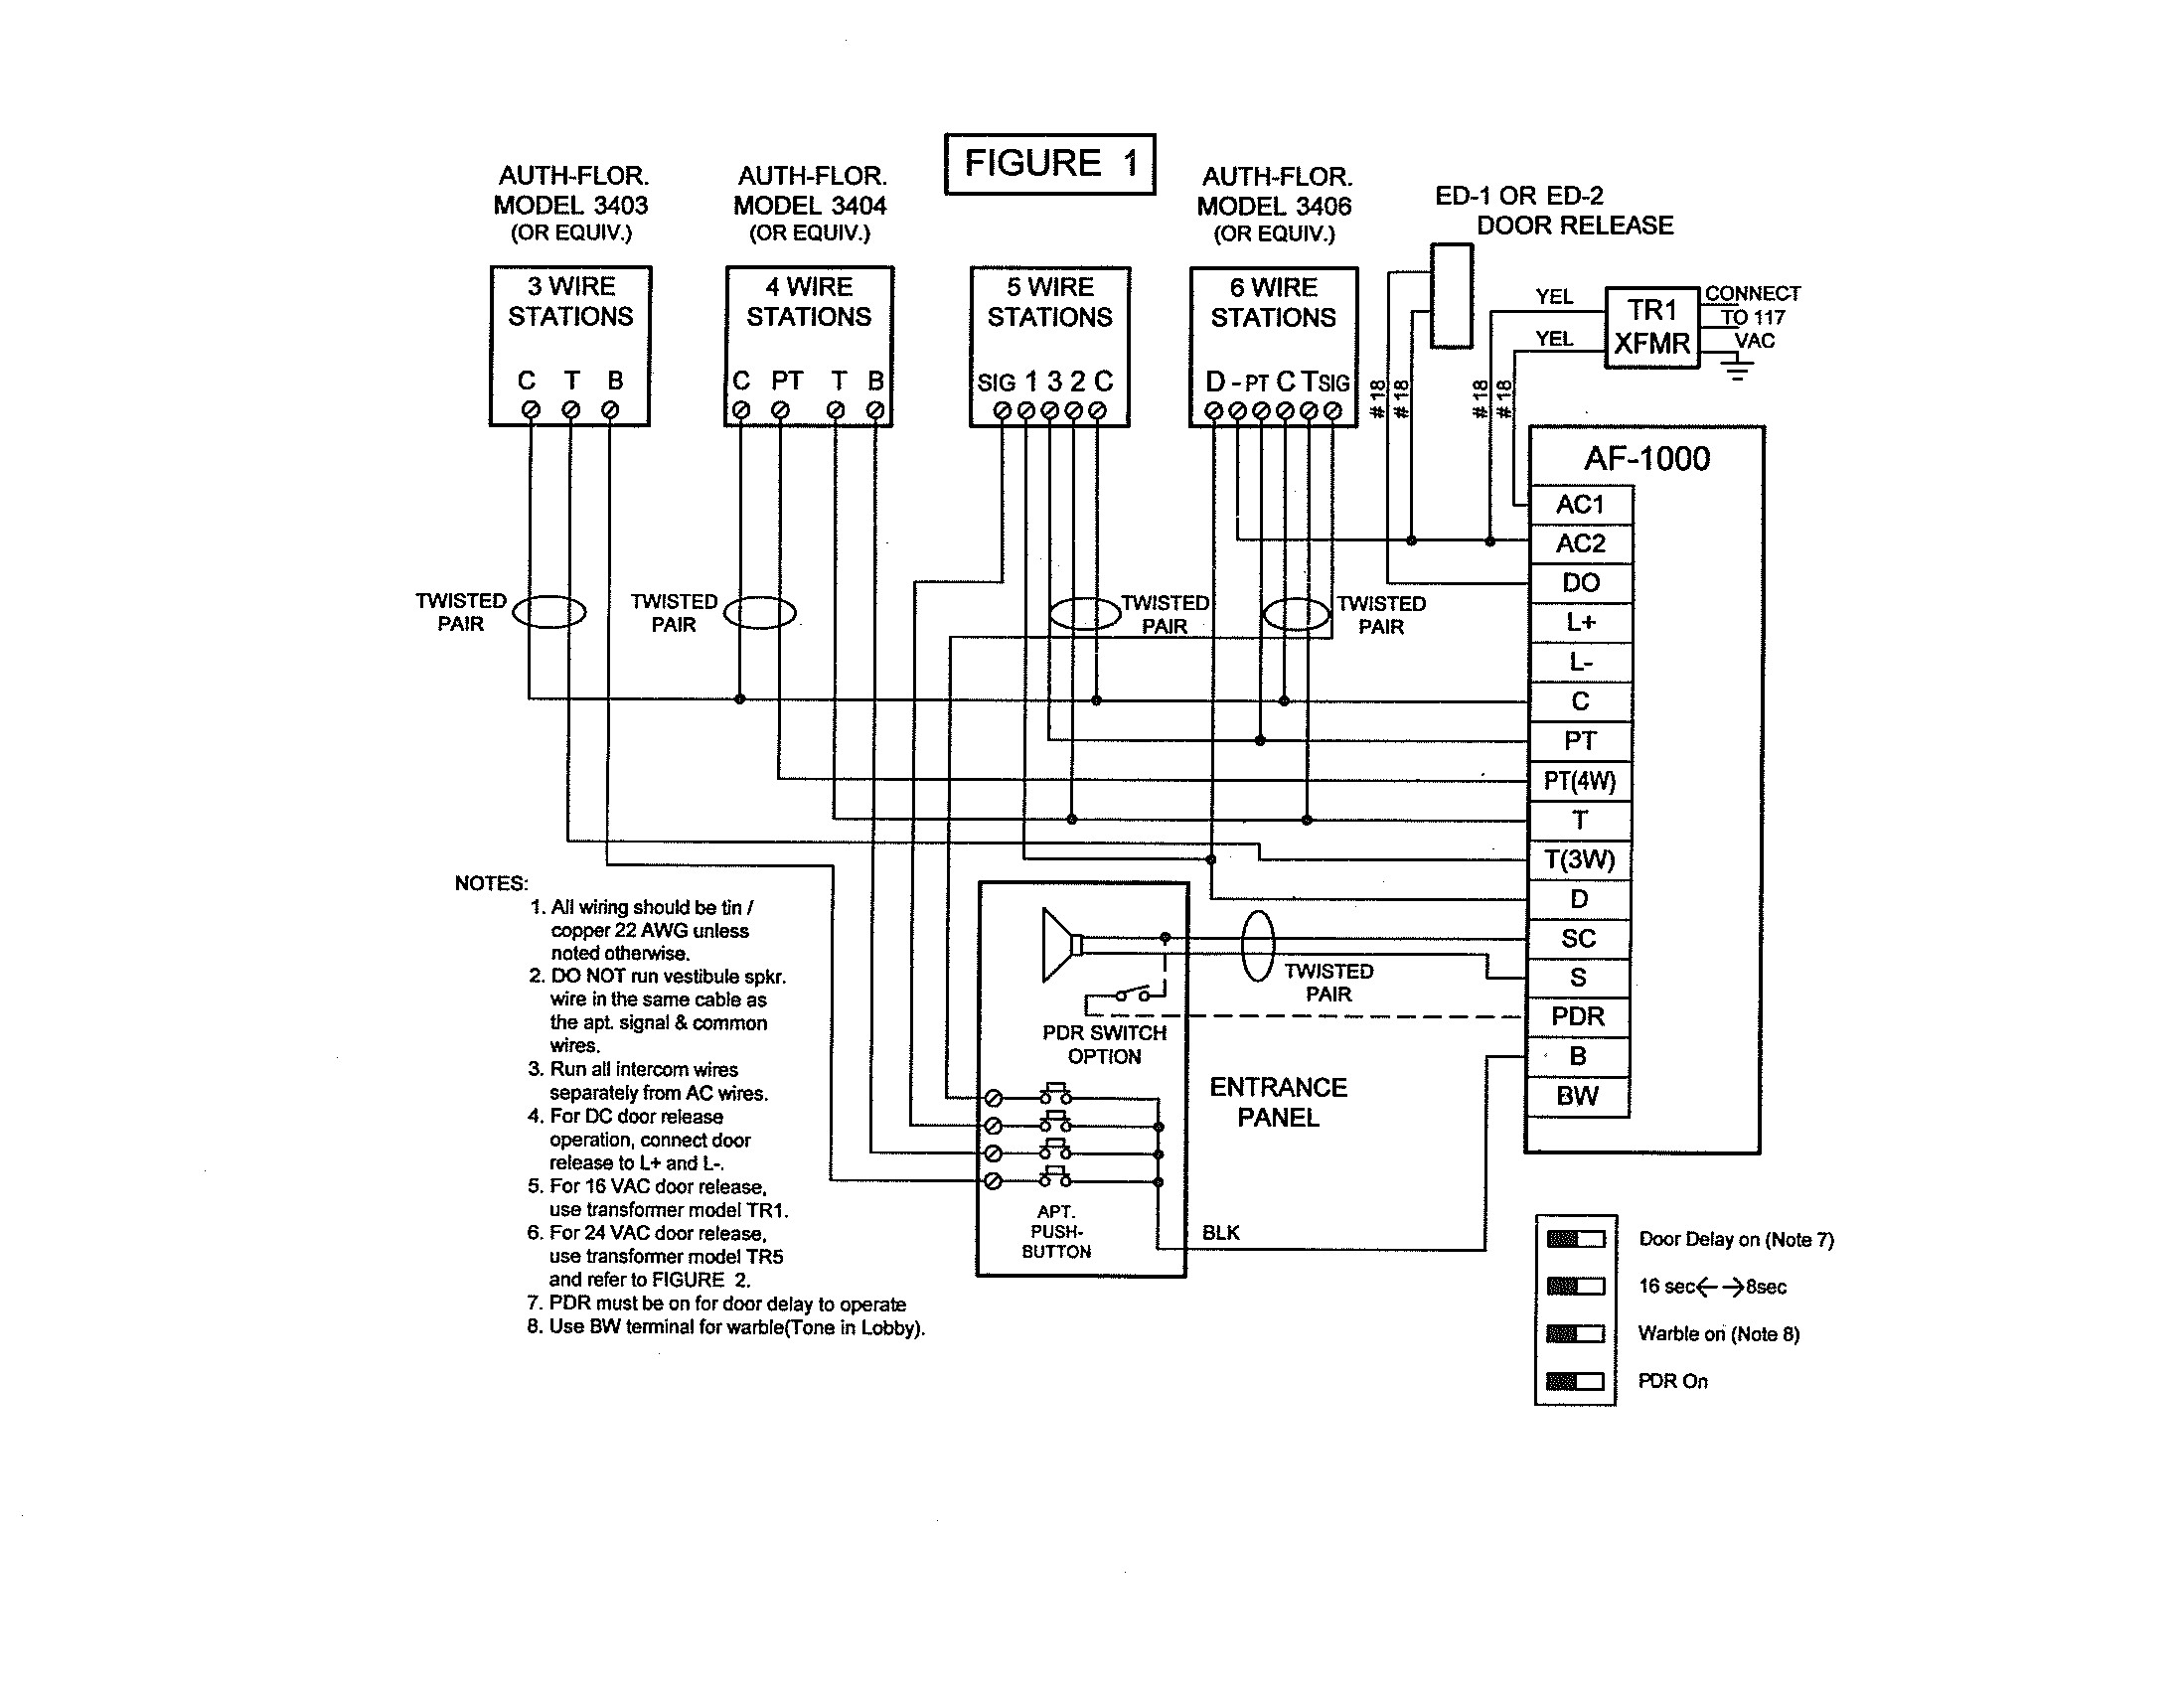 4 wire pull station wiring diagram